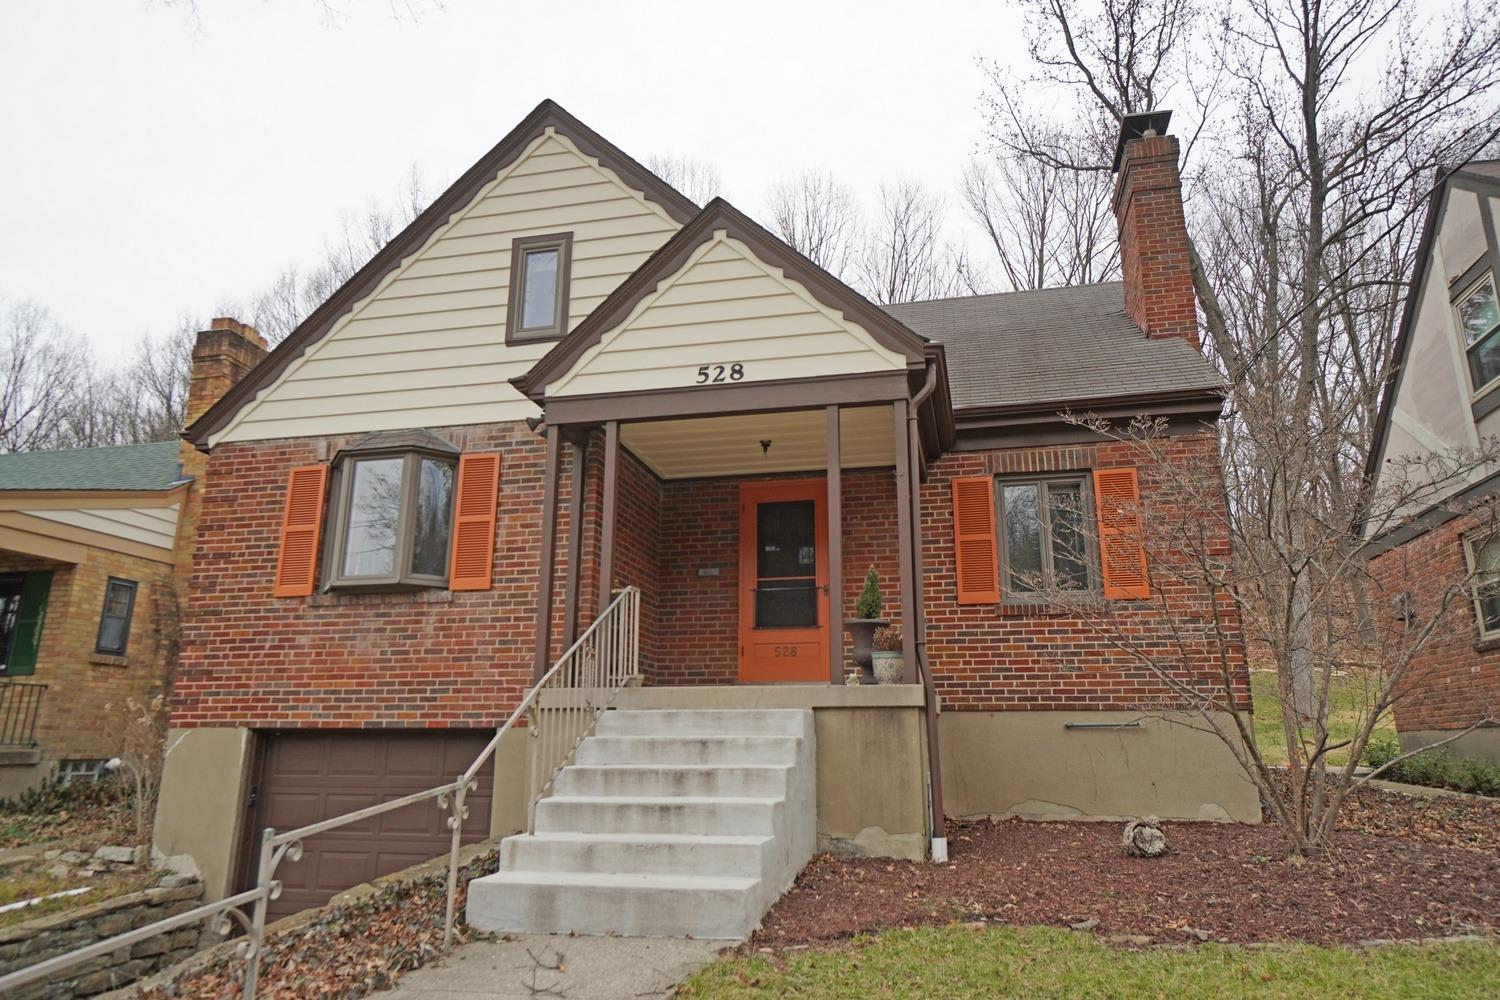 Photo 1 for 528 McAlpin Ave Clifton, OH 45220